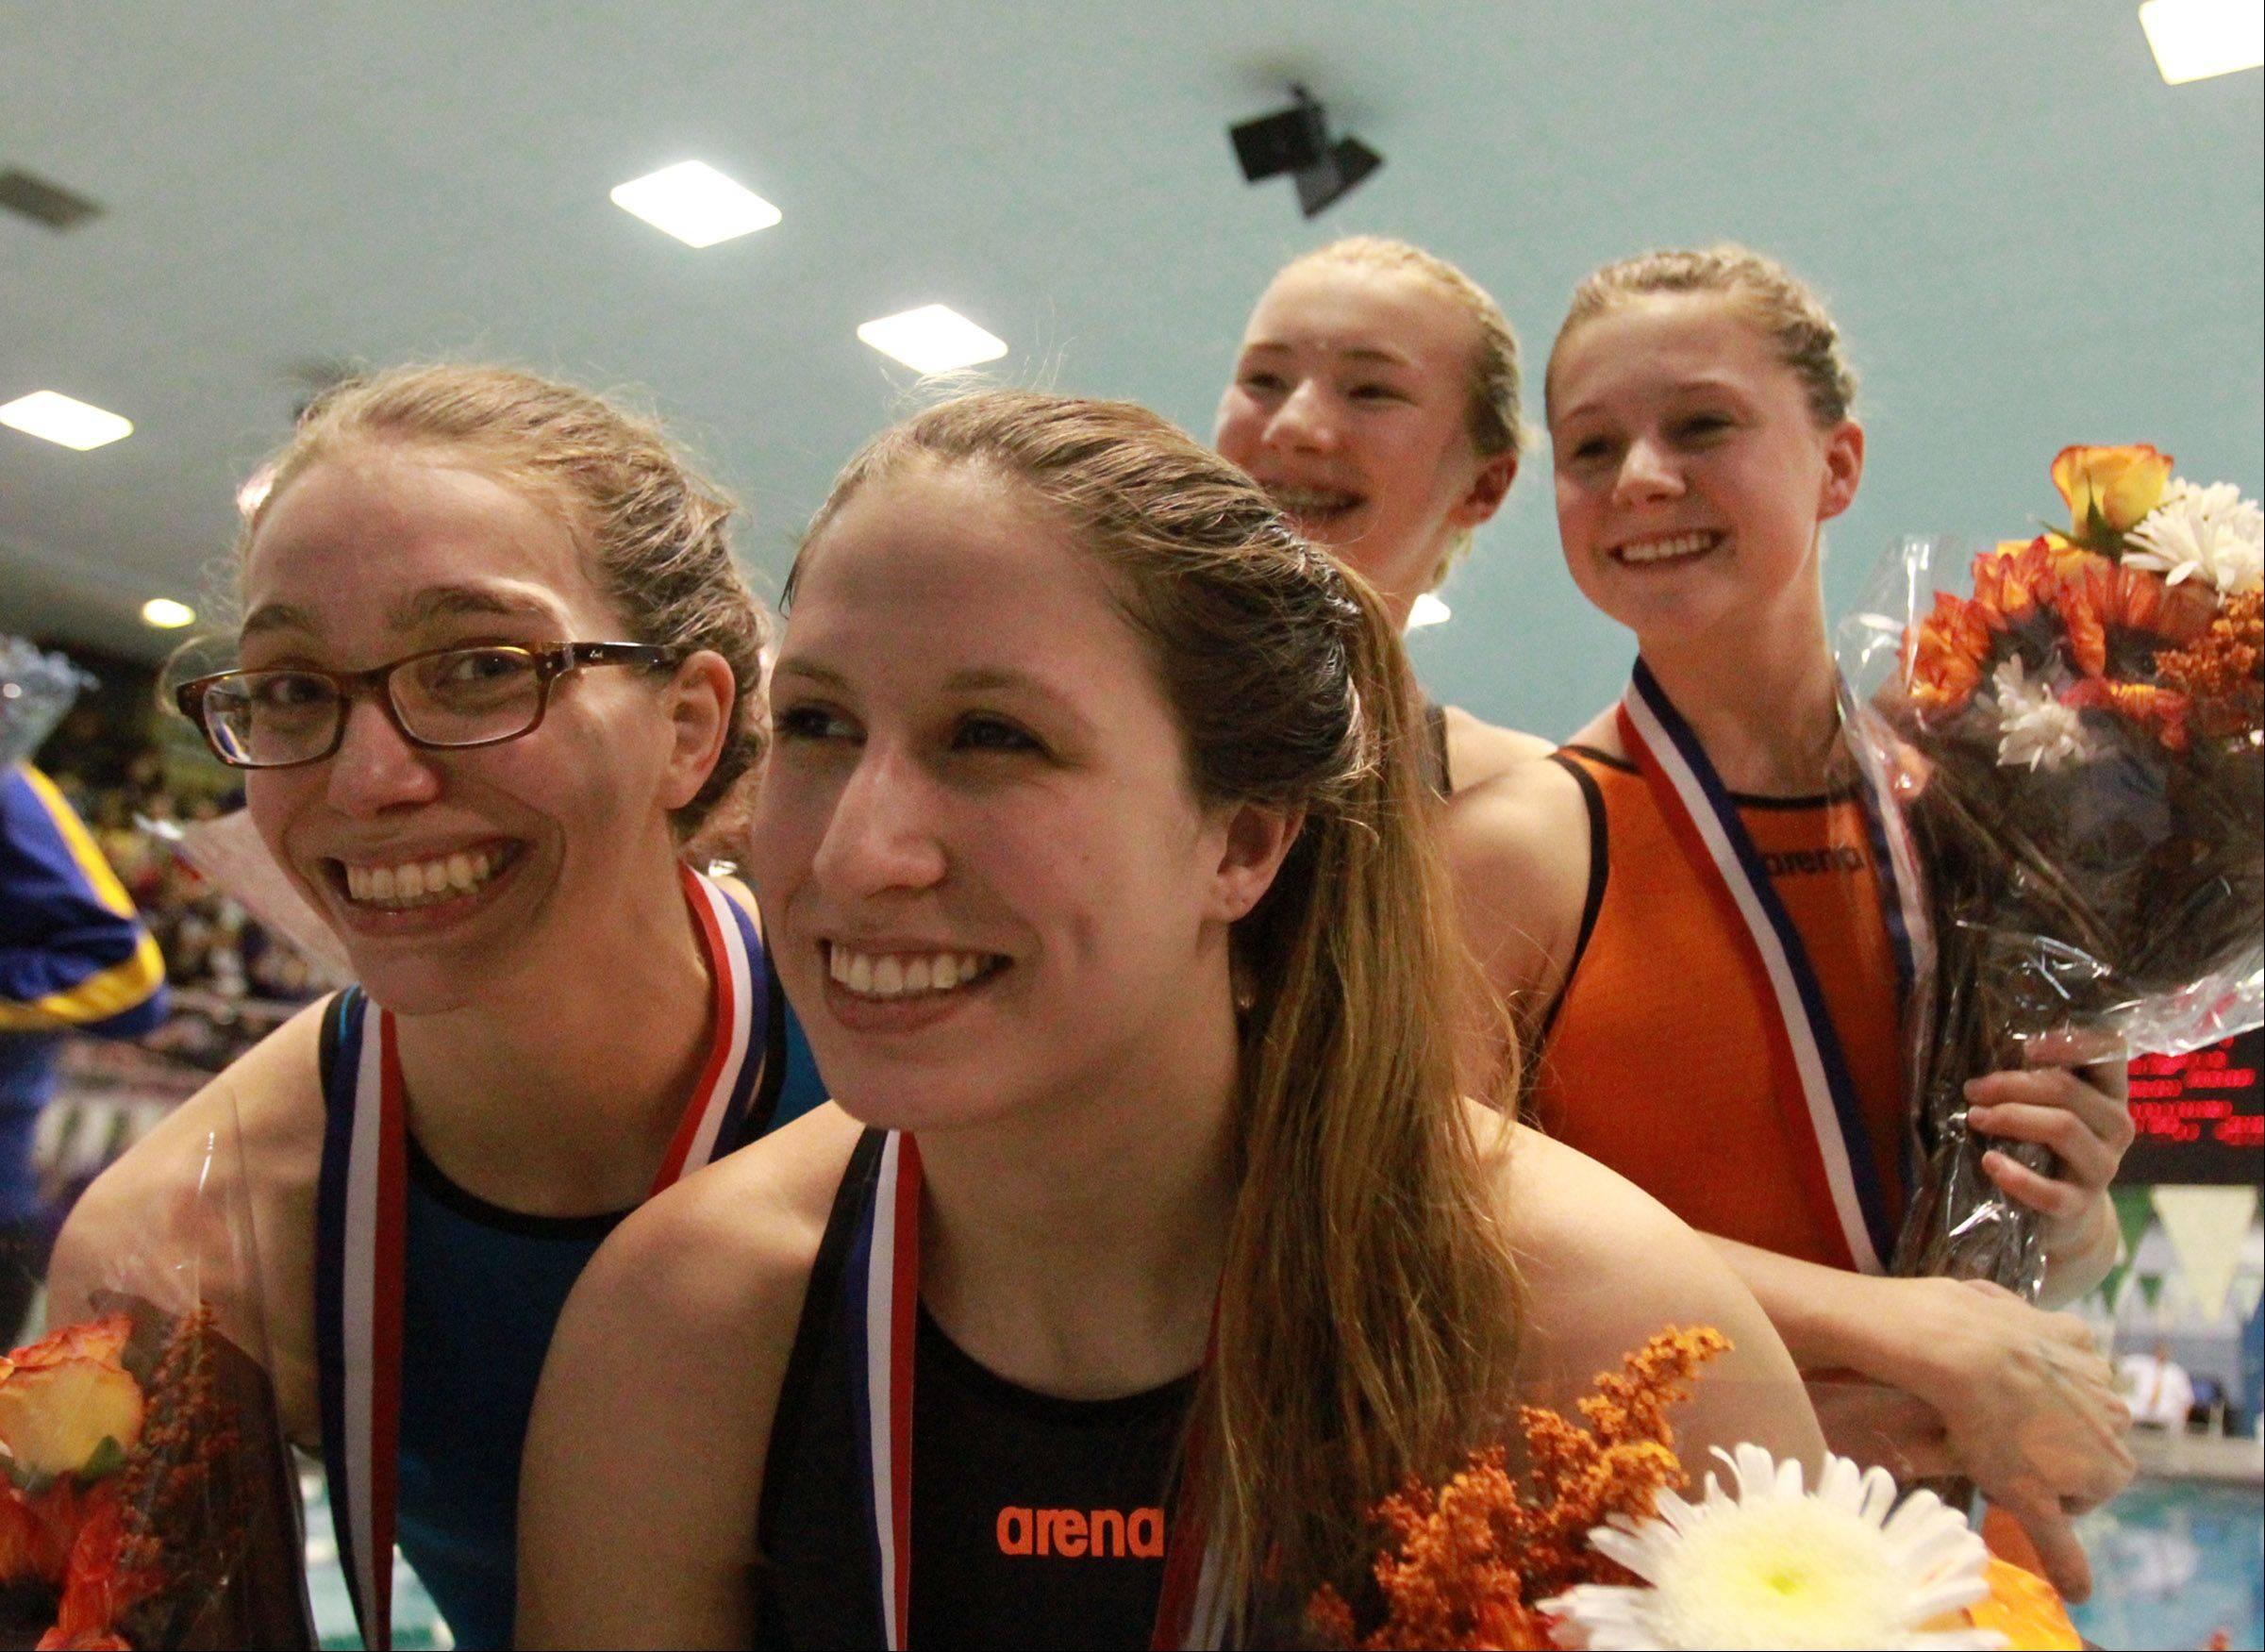 Libertyville's Meredith Robbins, Staci Herchenbach, Sophia Lex, and Macey Neubauer placed ninth in 200 medley relay at the girls swimming state finals on Saturday at New Trier.